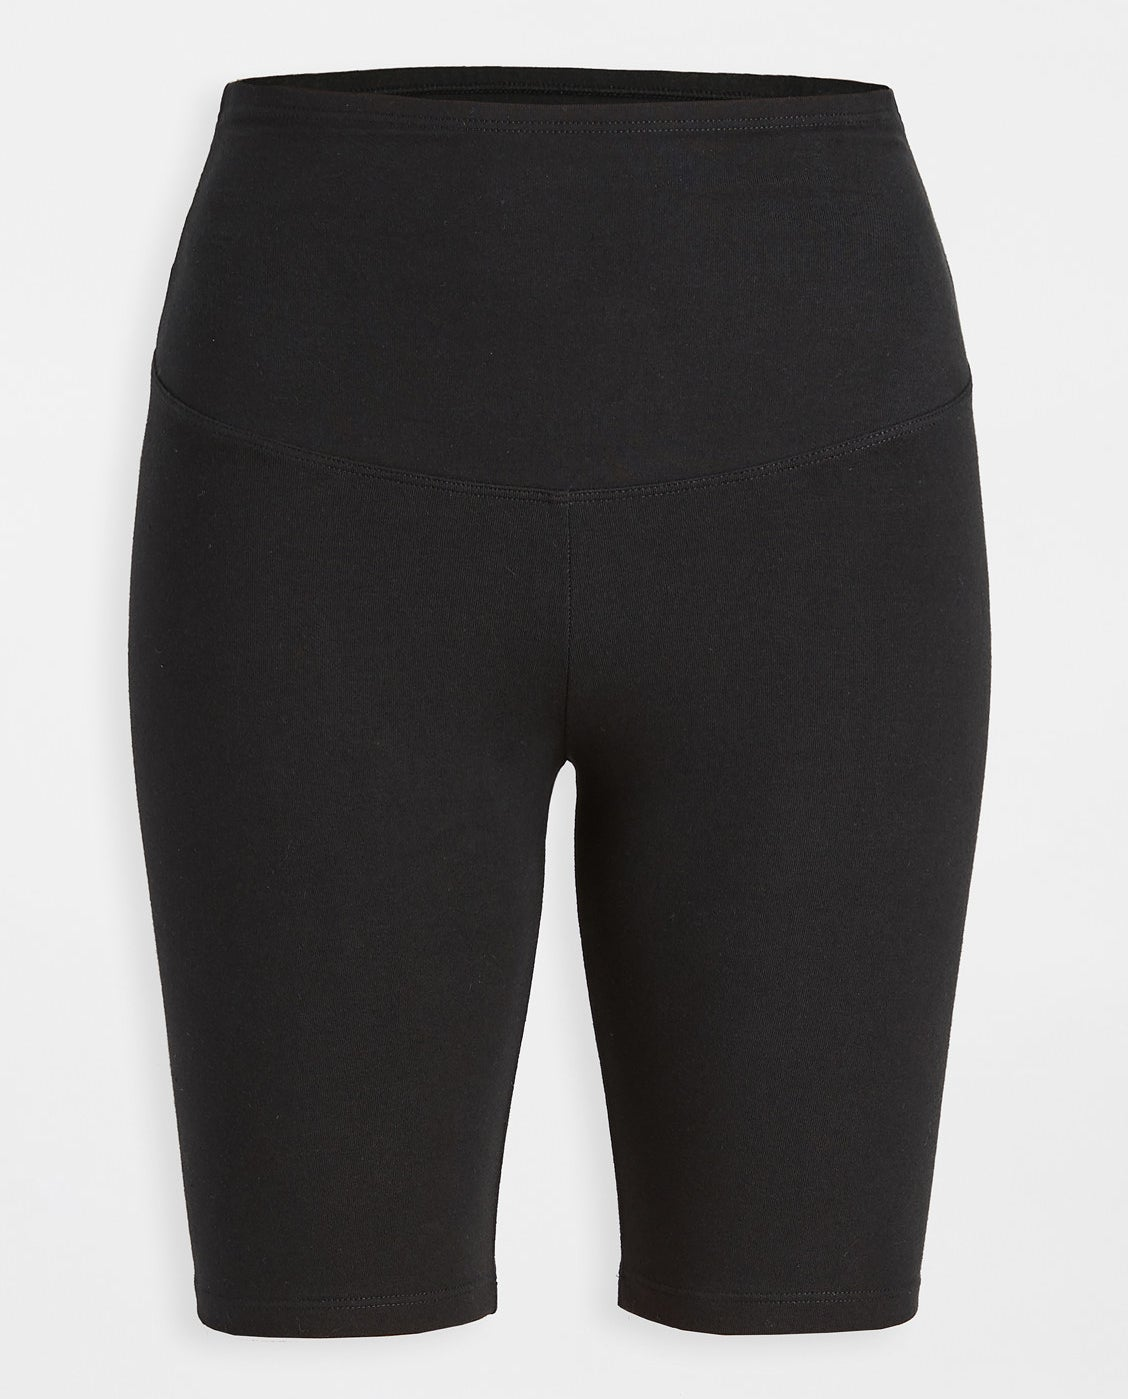 black compression shorts that hit mid-thigh in length